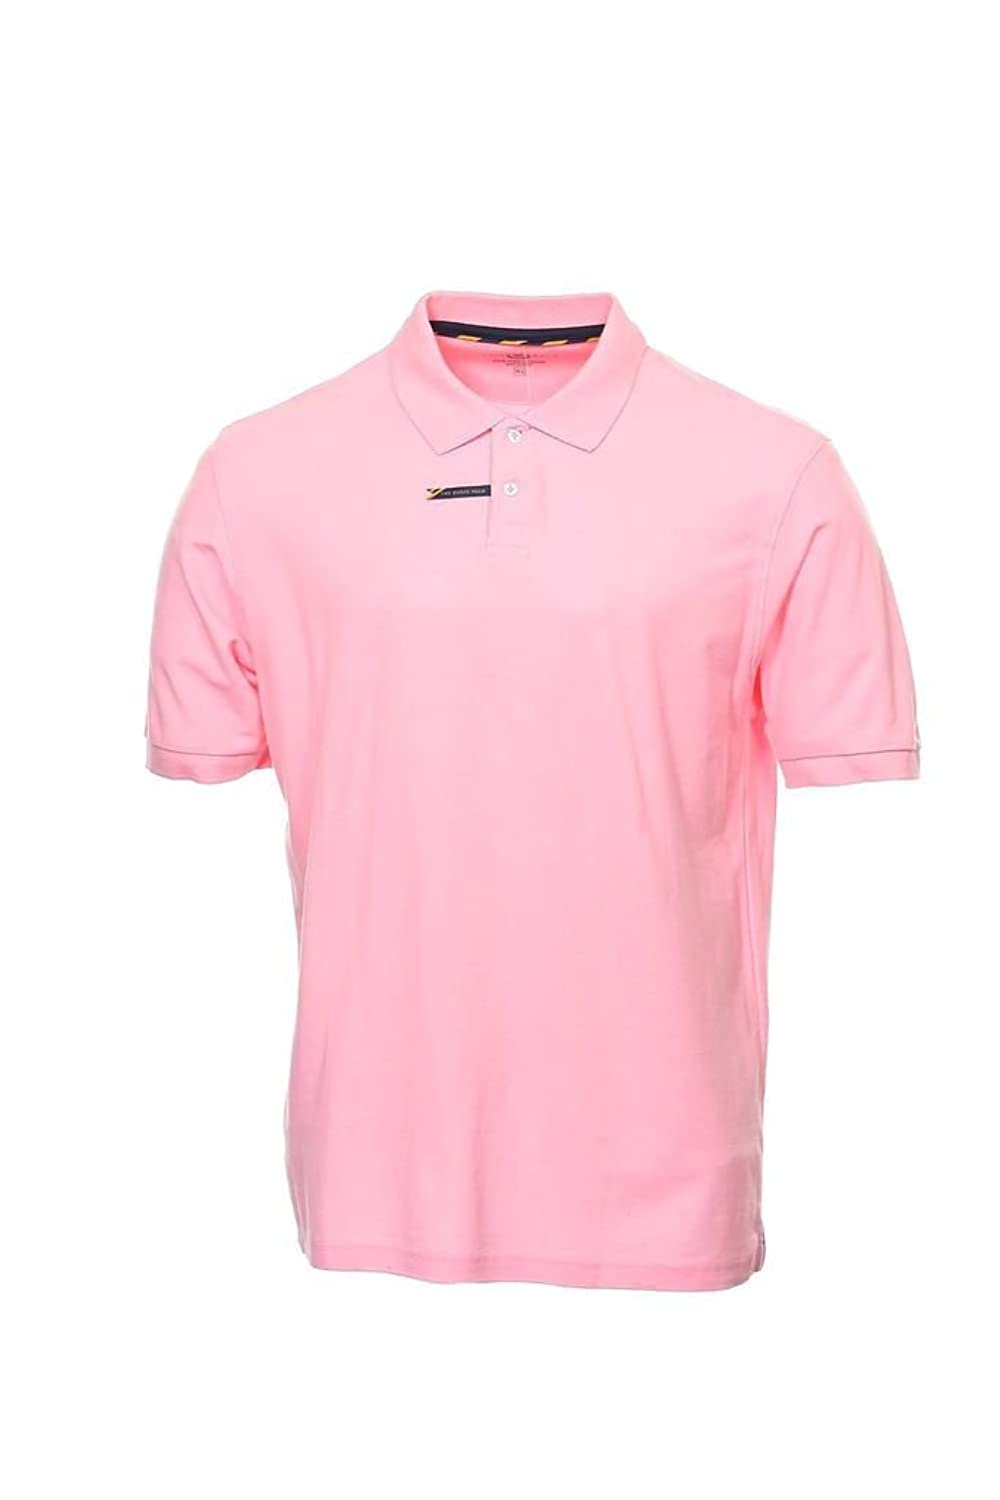 Club Room Men's Estate Performance Pique Polo Shirt Large L Sorbet Pink